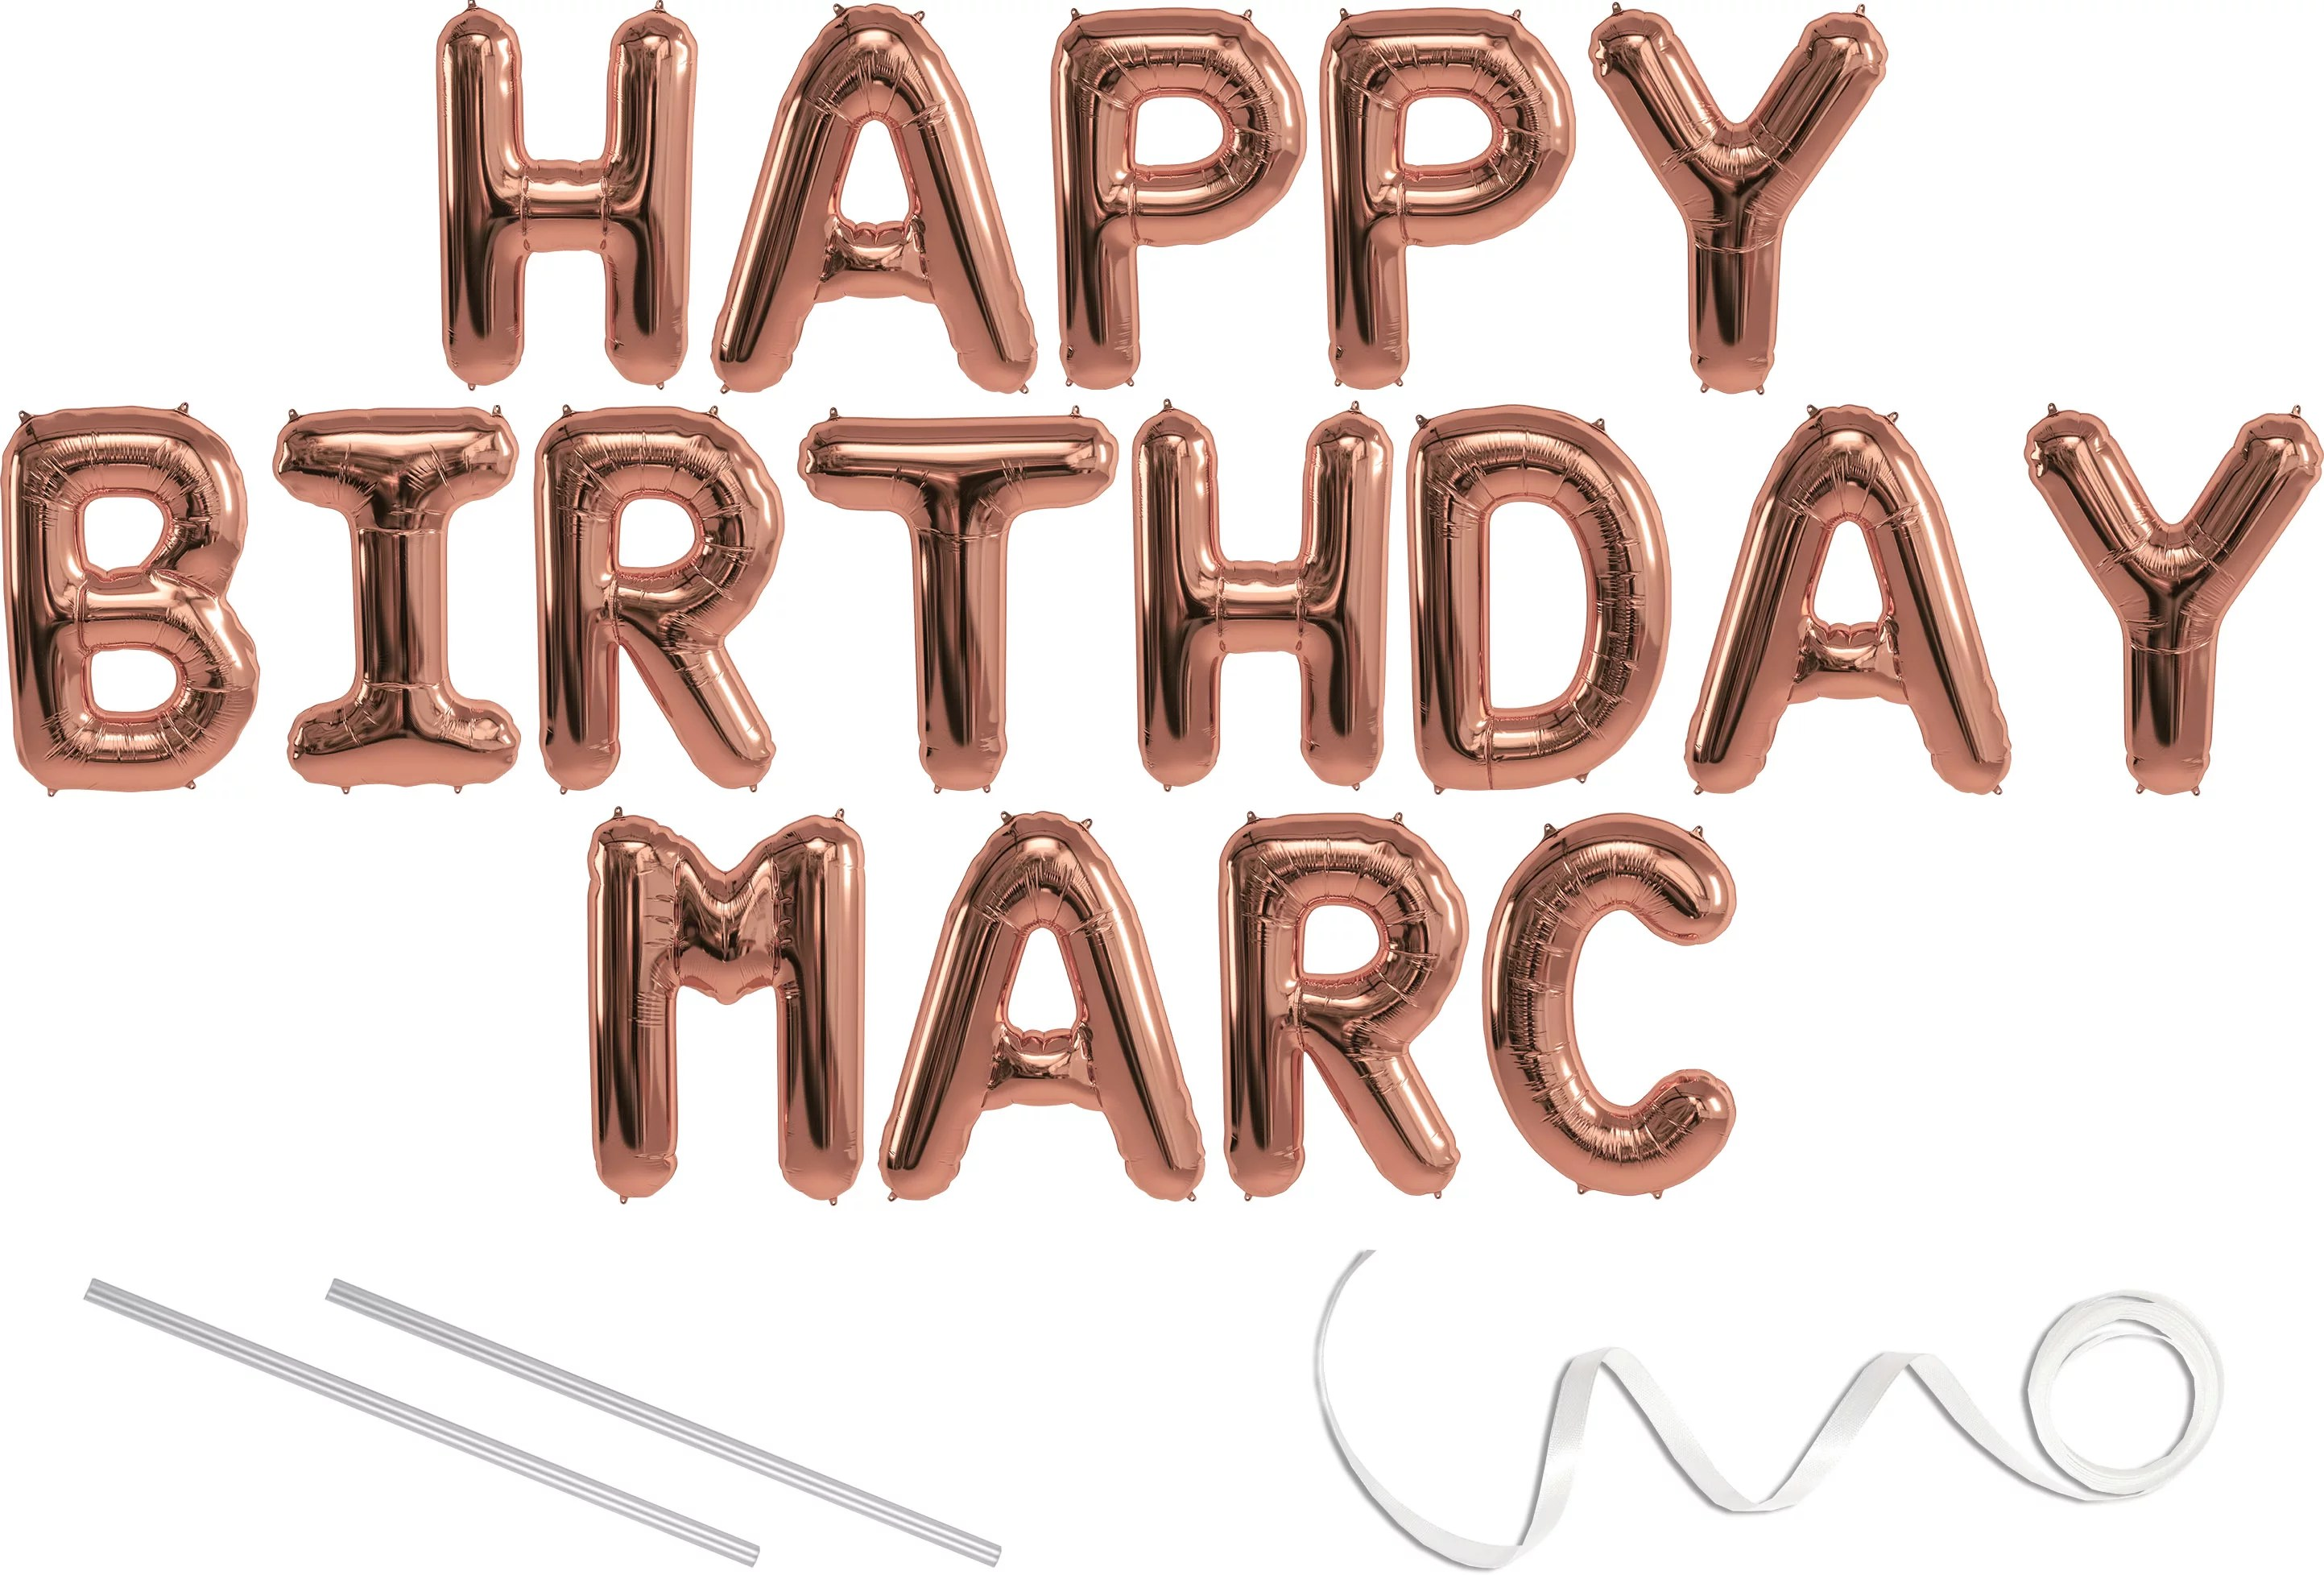 Marc Happy Birthday Mylar Balloon Banner Rose Gold 16 Inch Letters Includes 2 Straws For Inflating String For Hanging Air Fill Only Does Not Float W Helium Great Birthday Decoration